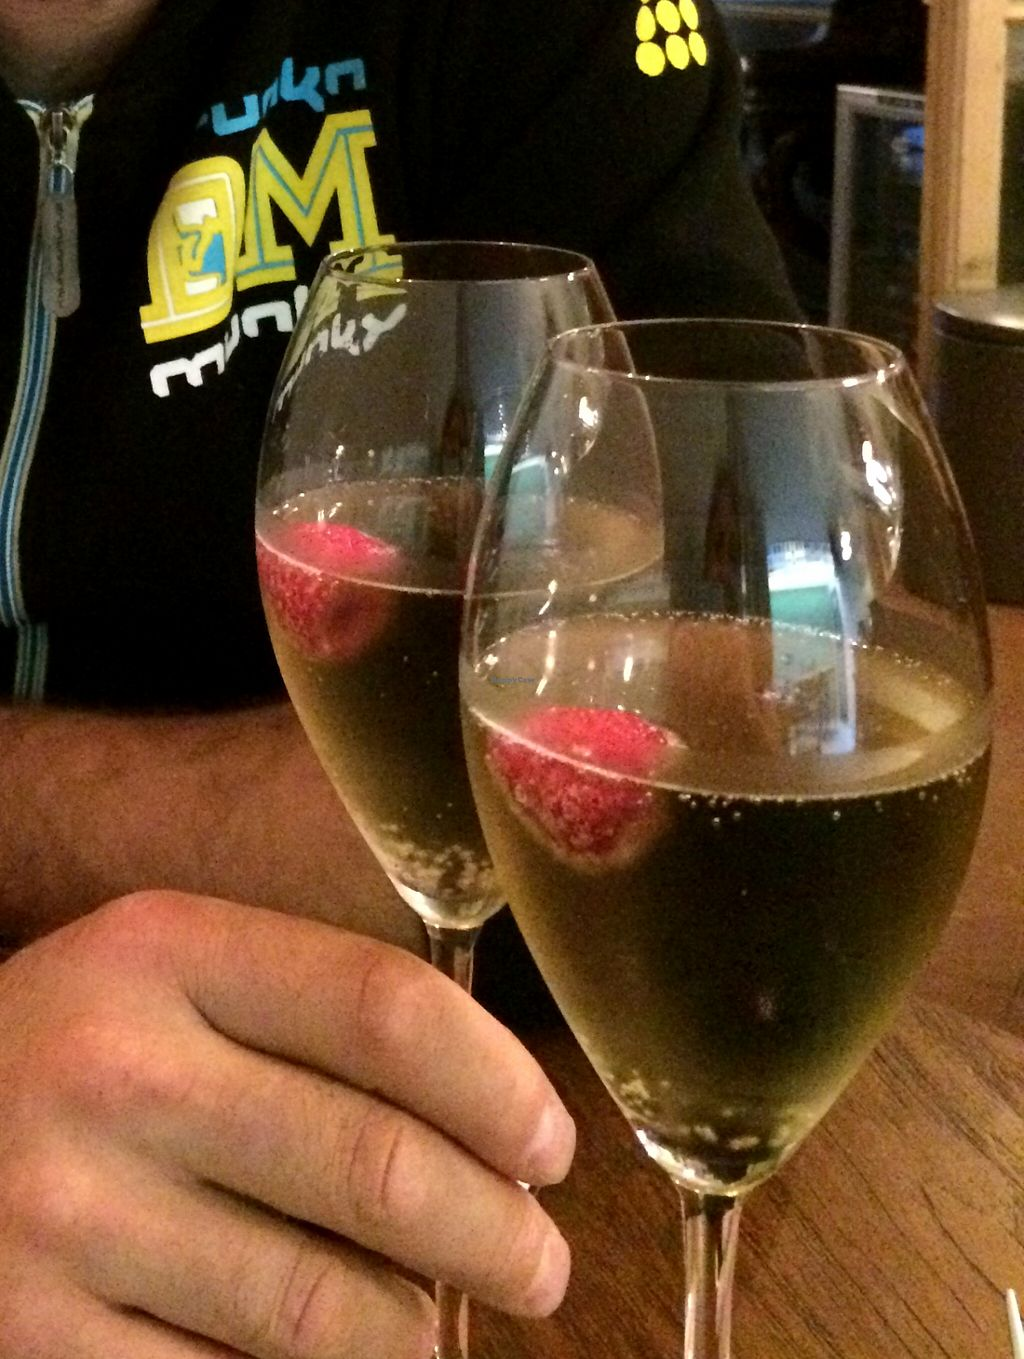 """Photo of Bites and Wines  by <a href=""""/members/profile/LisaCupcake"""">LisaCupcake</a> <br/>Lavender-infused sparkling wine with a raspberry <br/> October 9, 2015  - <a href='/contact/abuse/image/52562/120677'>Report</a>"""